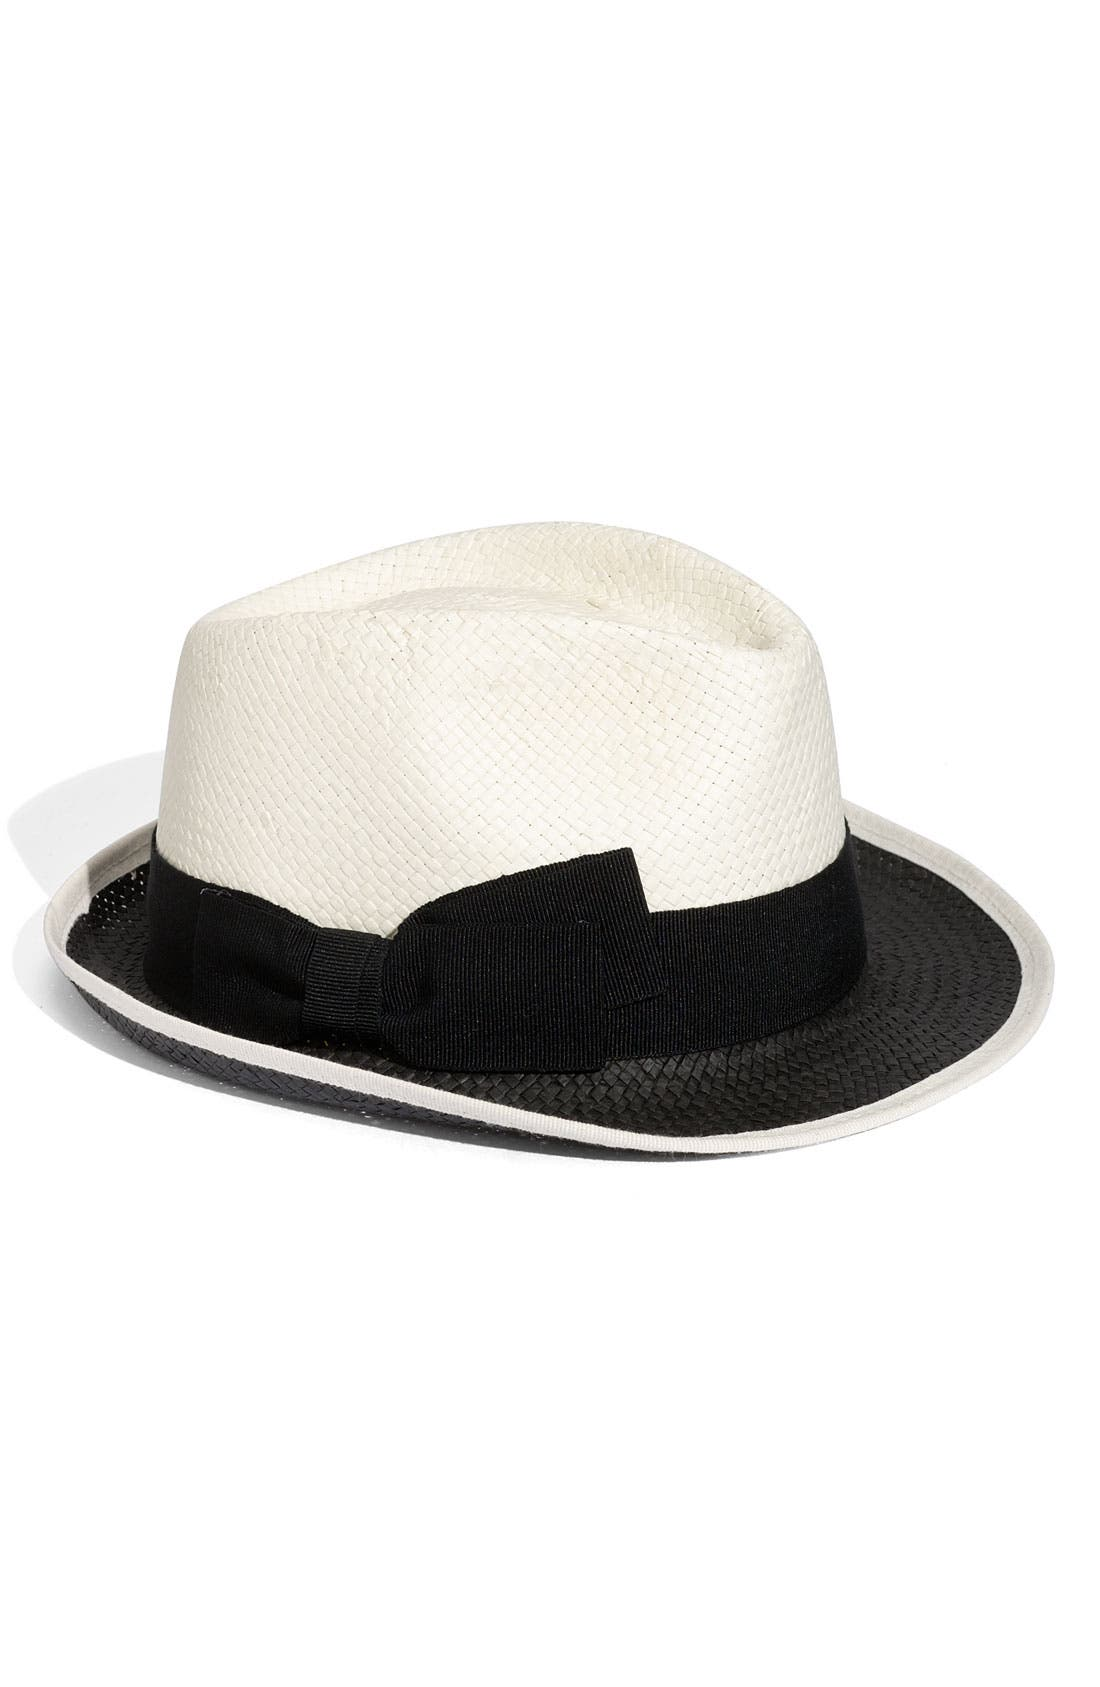 Alternate Image 1 Selected - Nordstrom 2-Tone Fedora